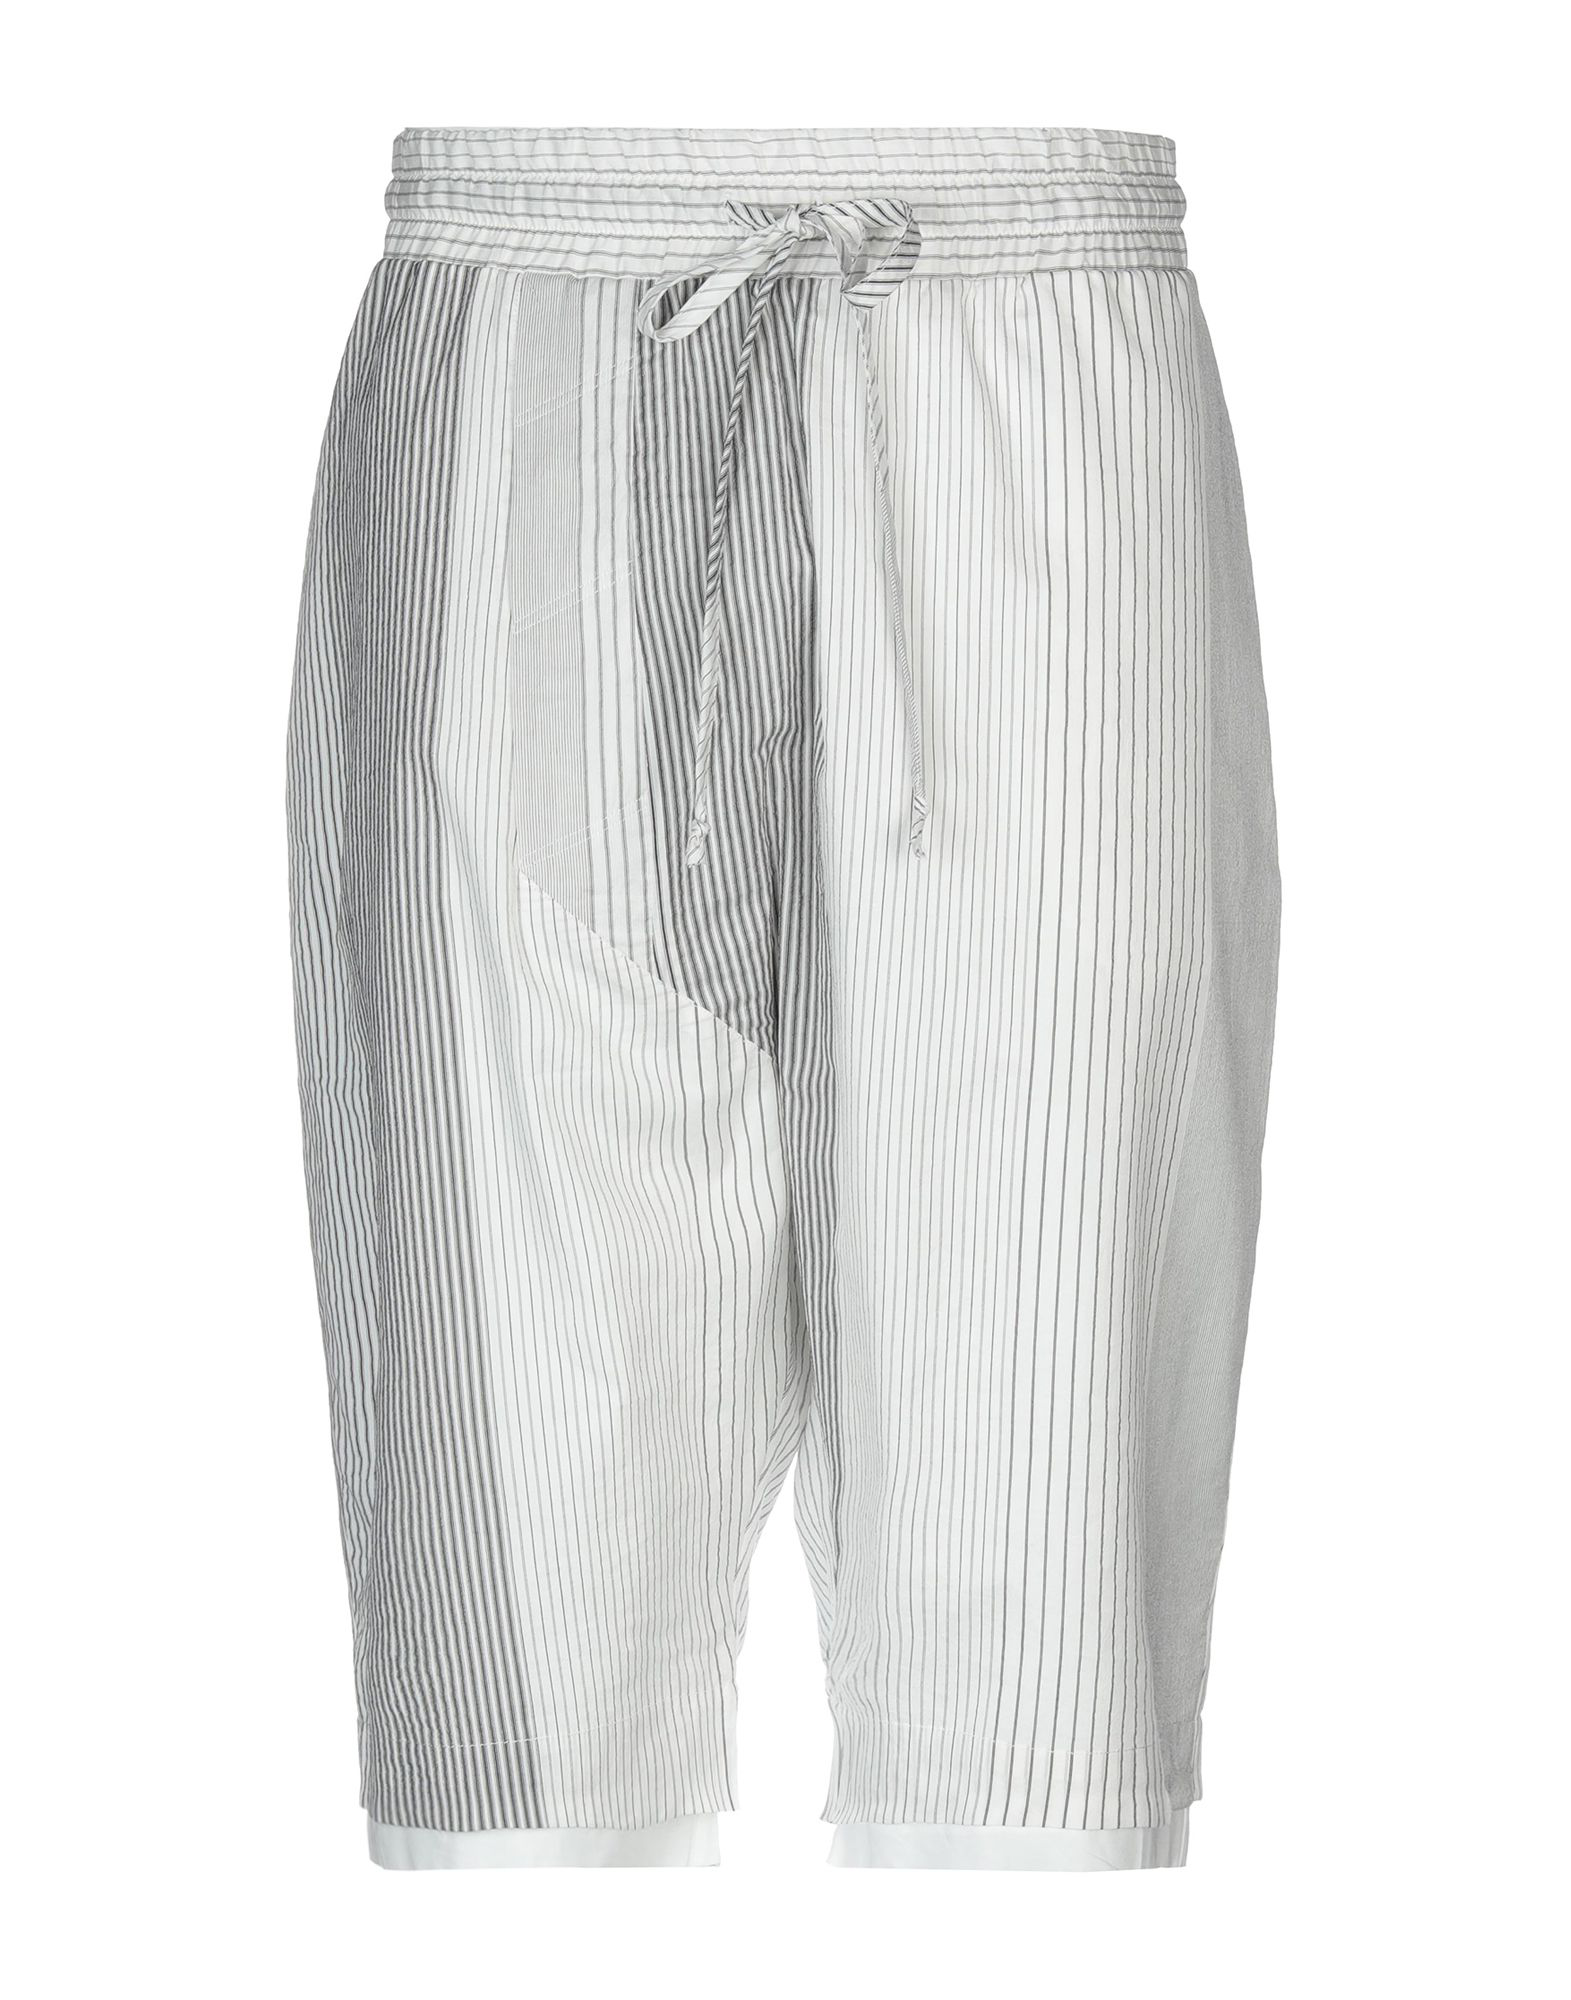 Lost & Found 3/4-length Short In White